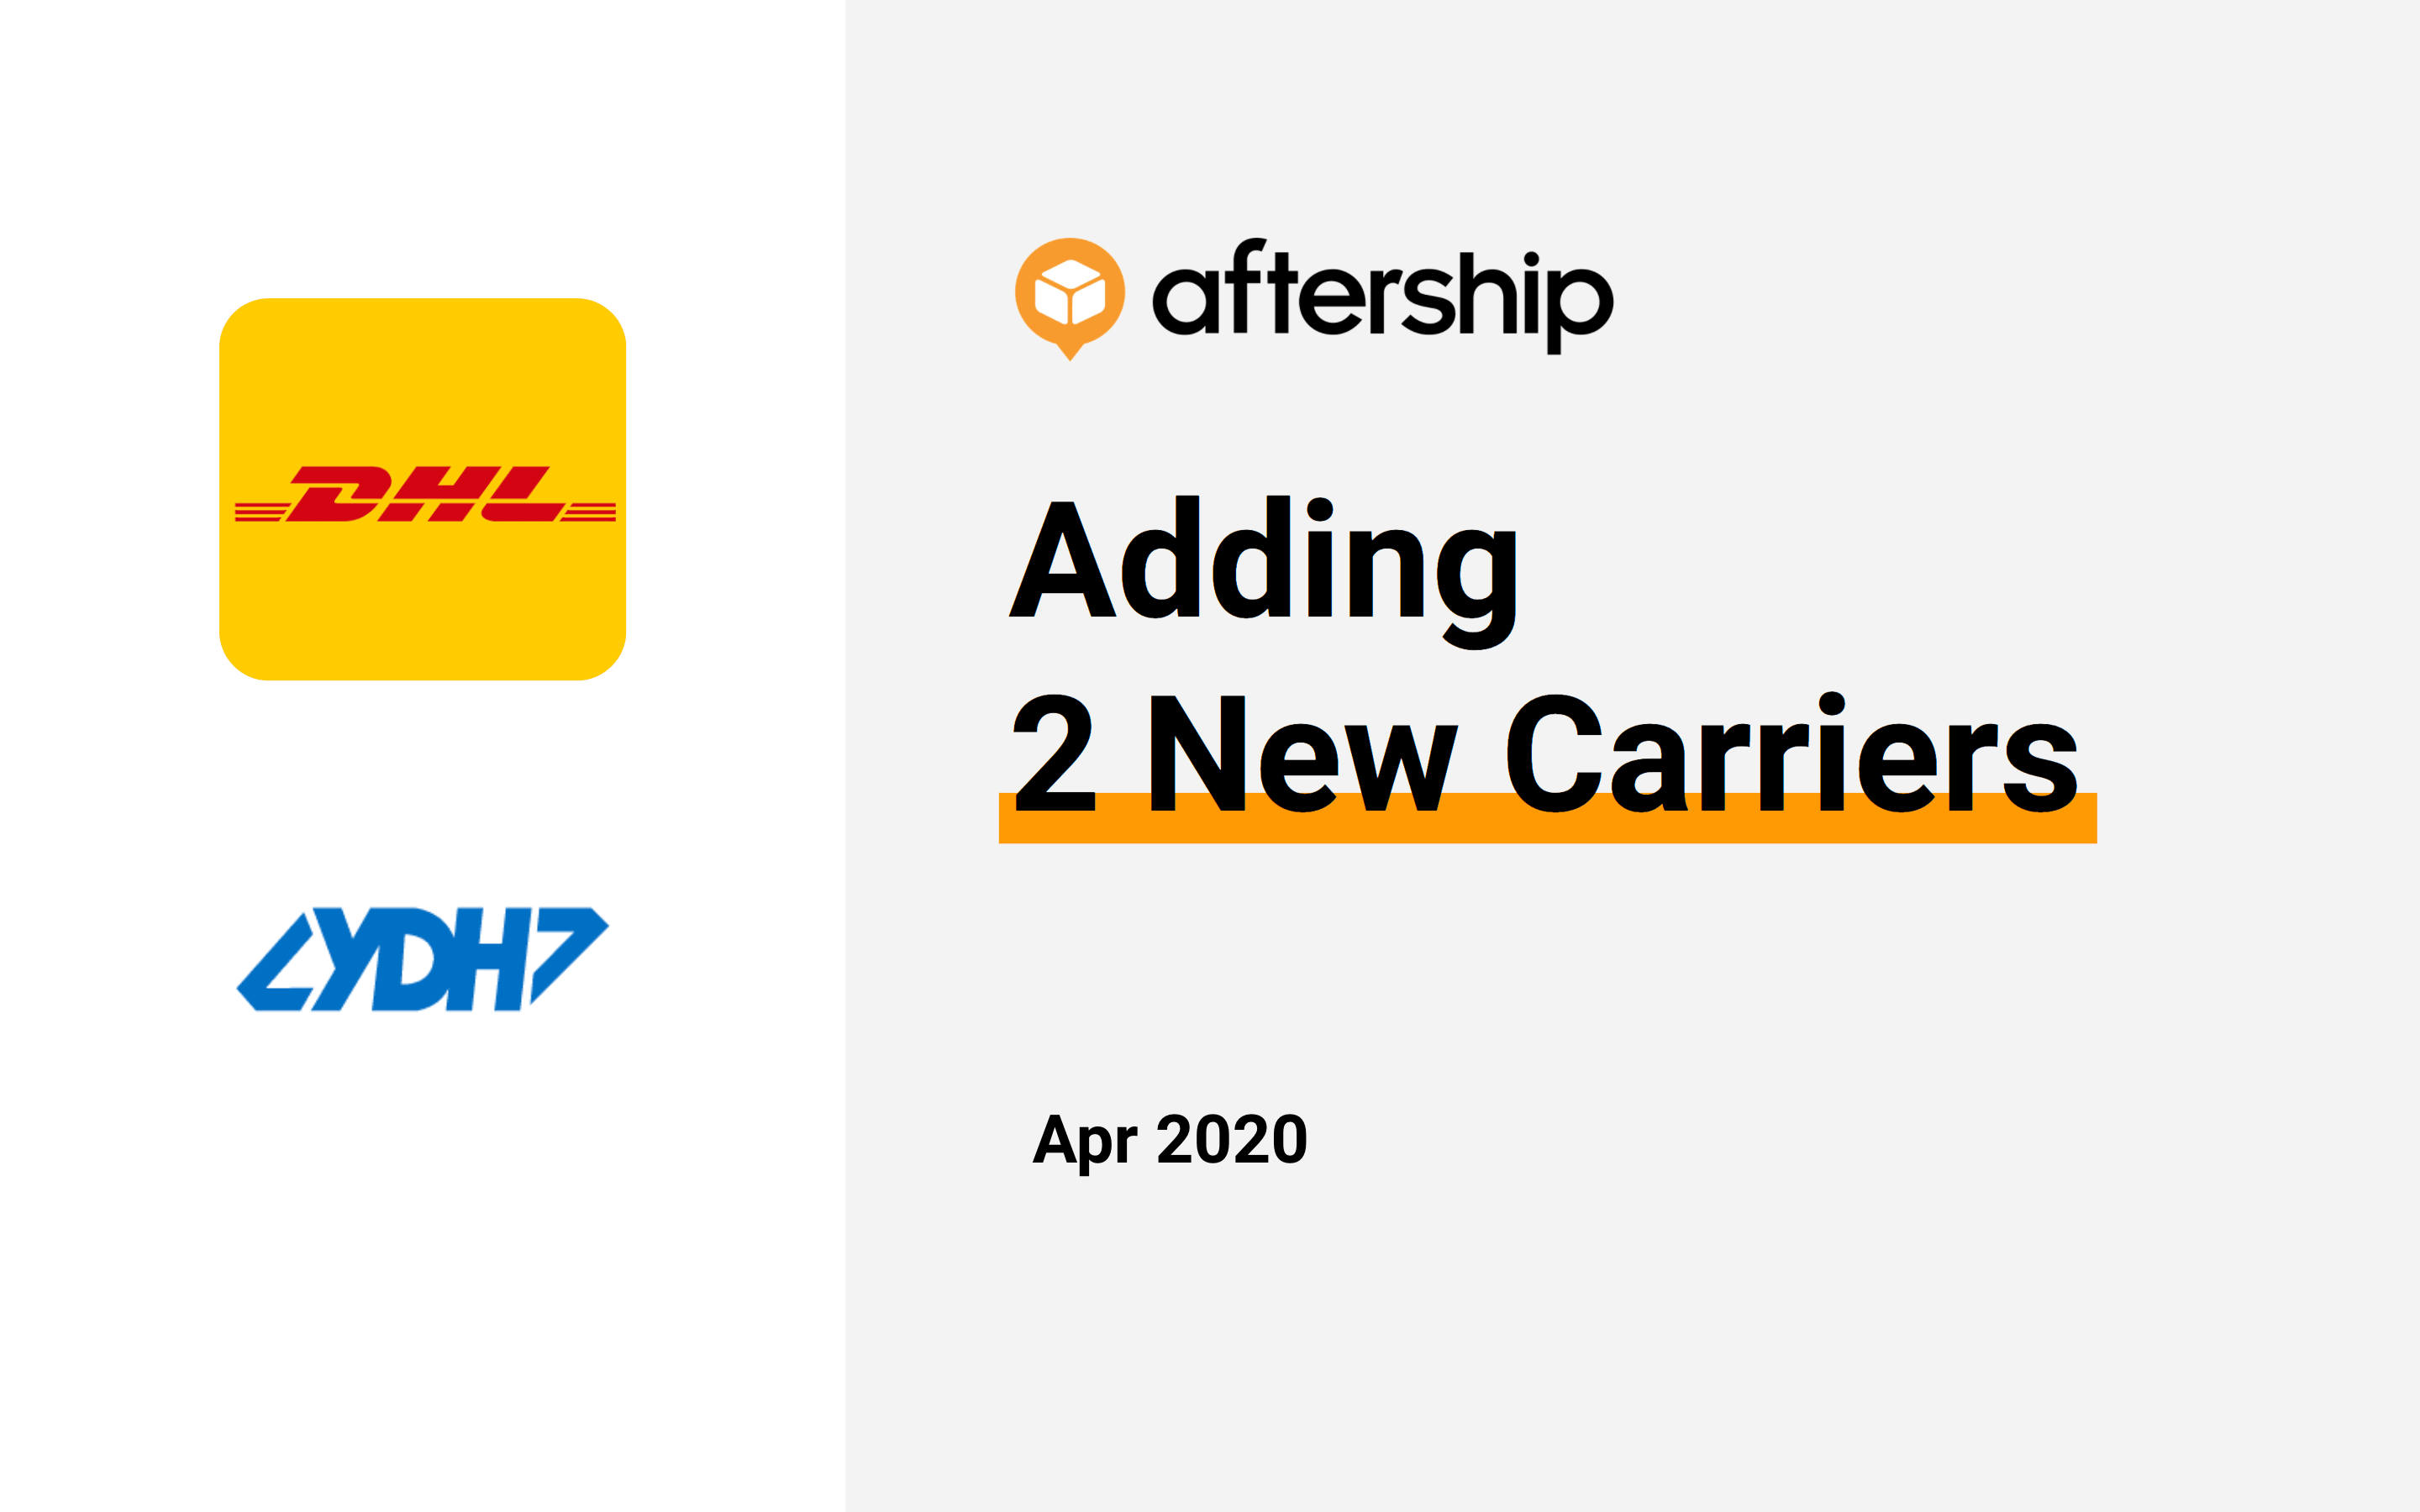 AfterShip added 2 new carriers this week (30 Mar 2020 to 02 Apr 2020)